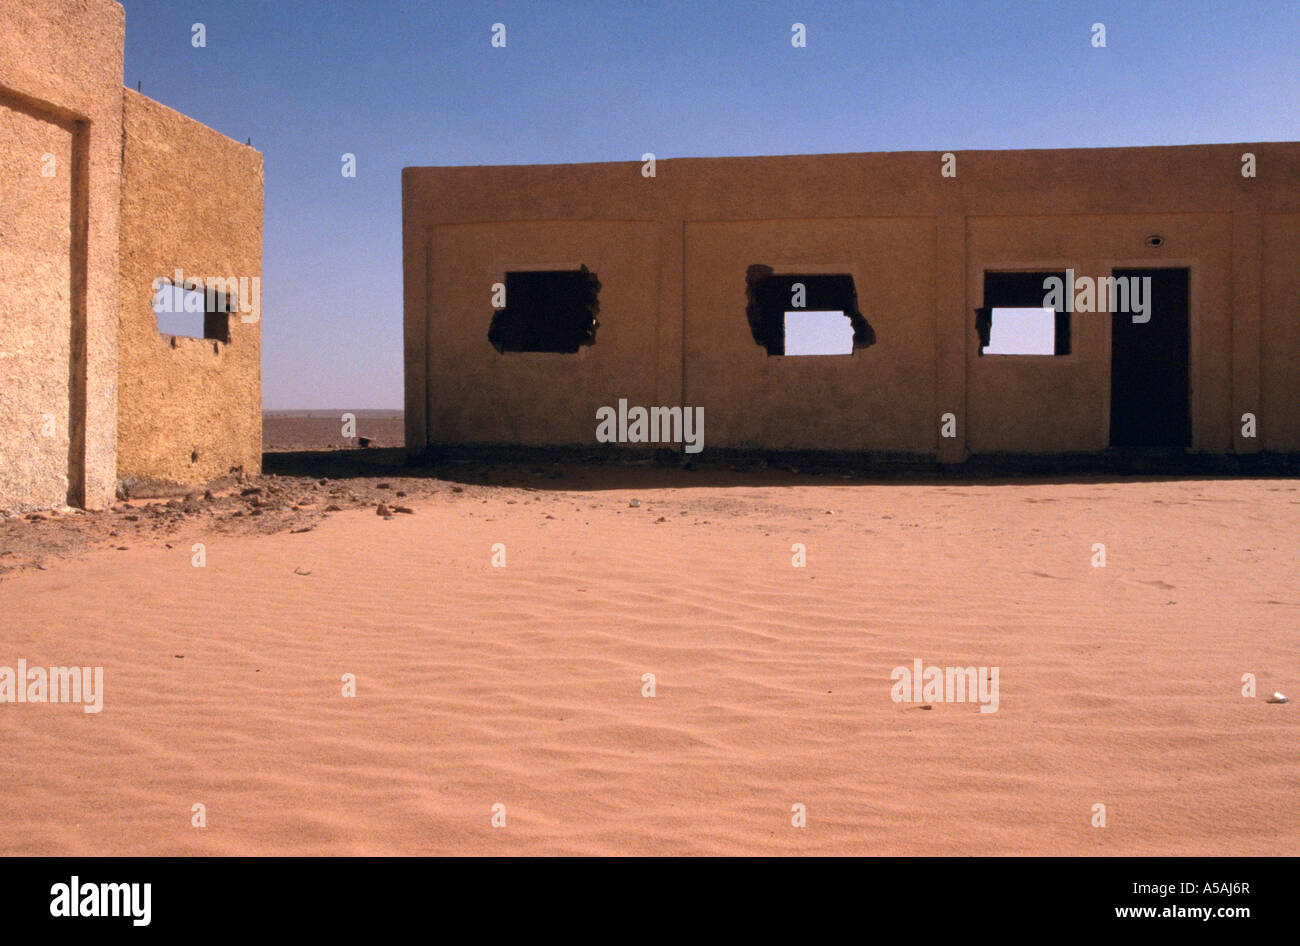 An abandoned Spanish military post in Western Sahara - Stock Image